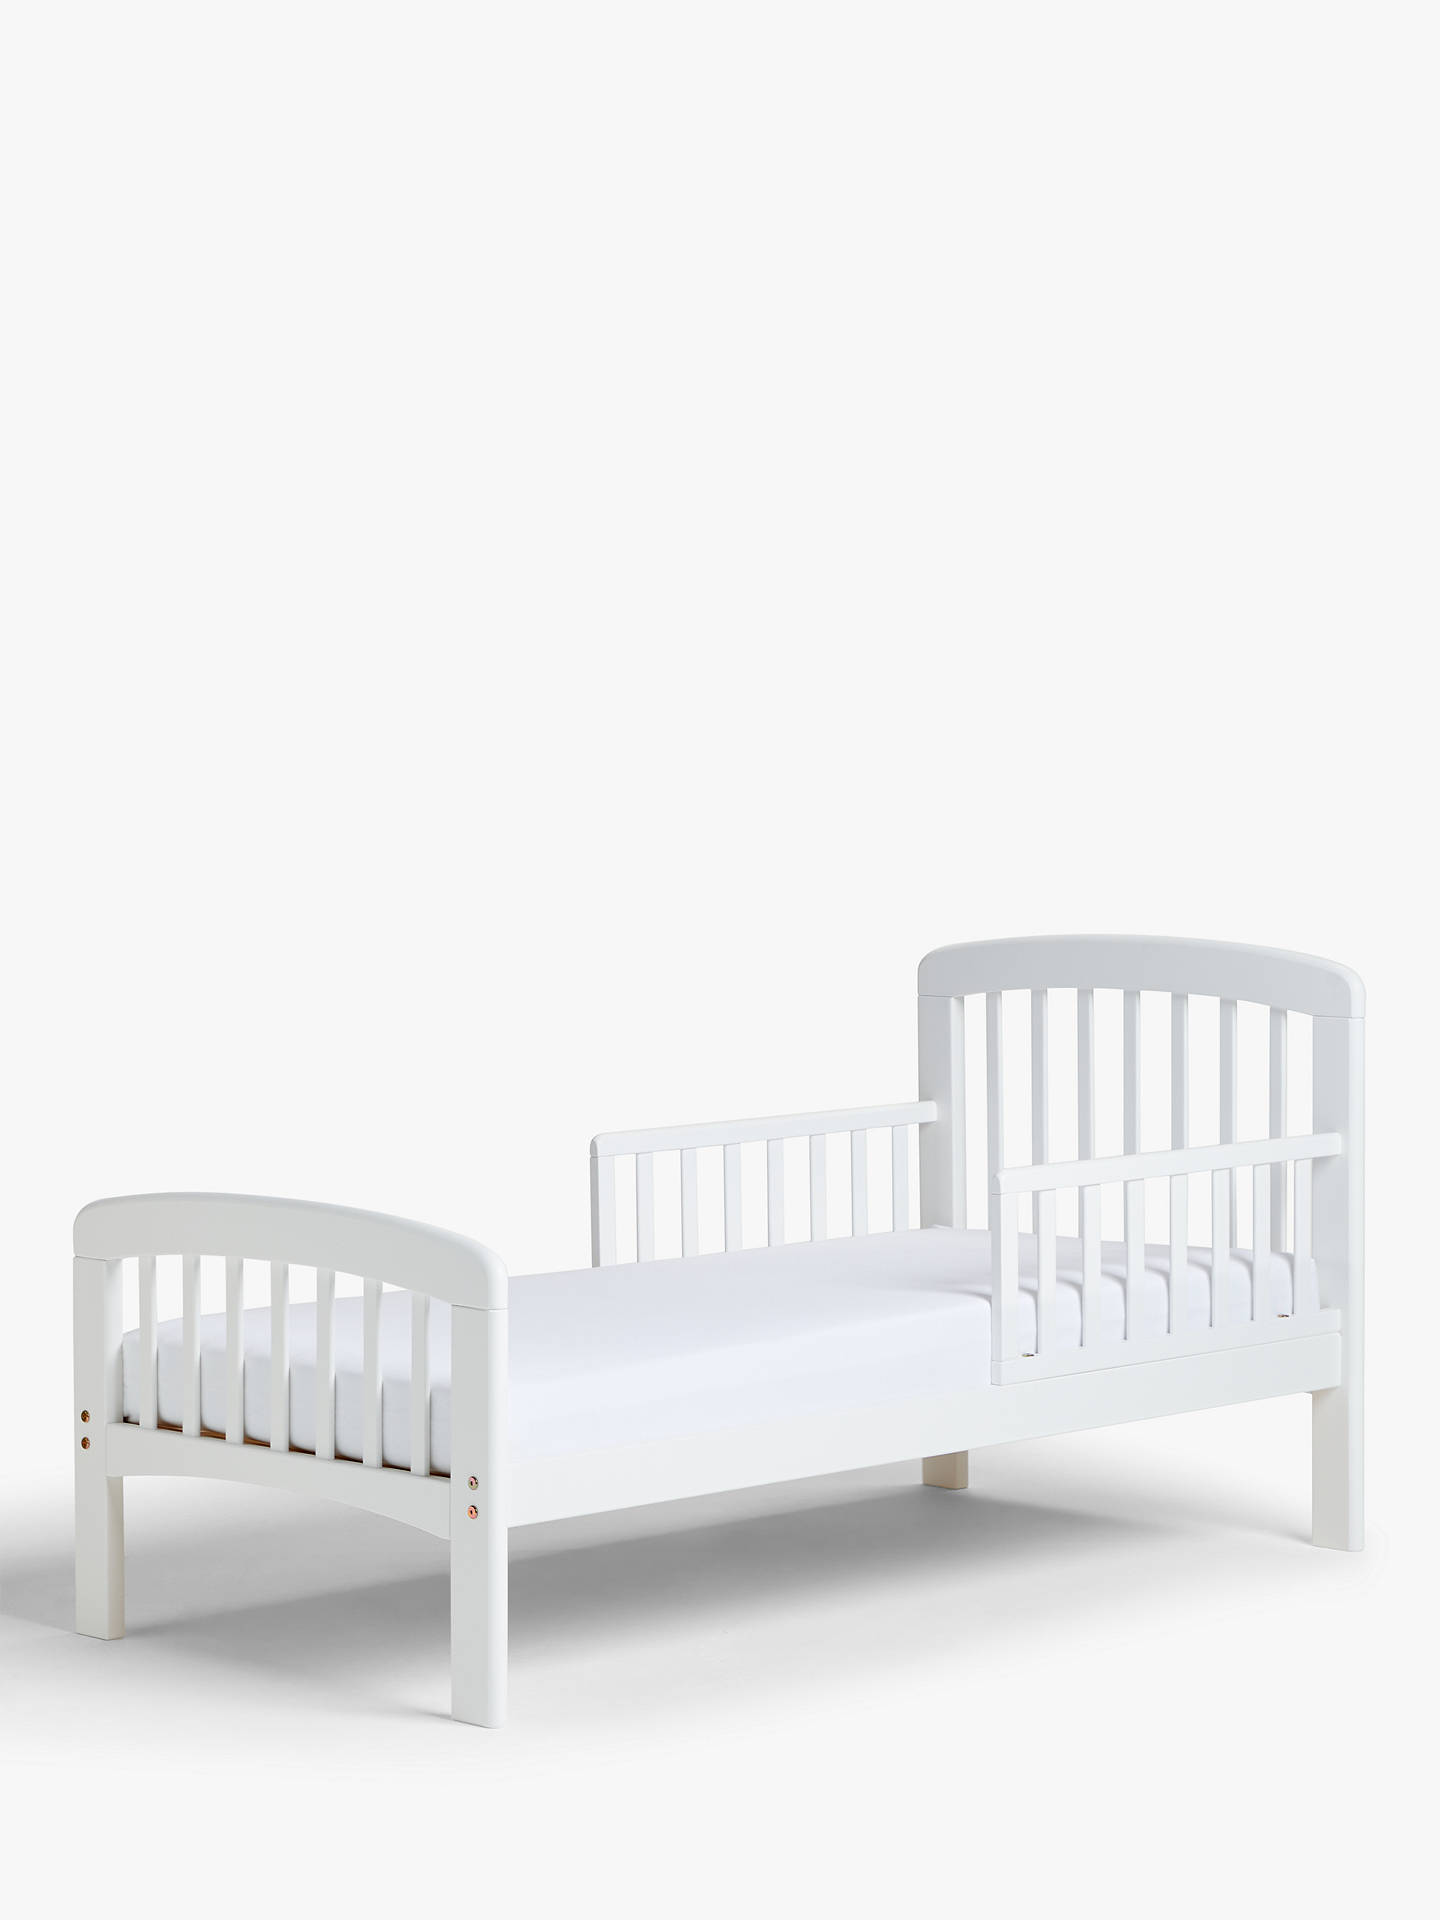 Fabulous John Lewis Toddler Bed Instructions Gmtry Best Dining Table And Chair Ideas Images Gmtryco